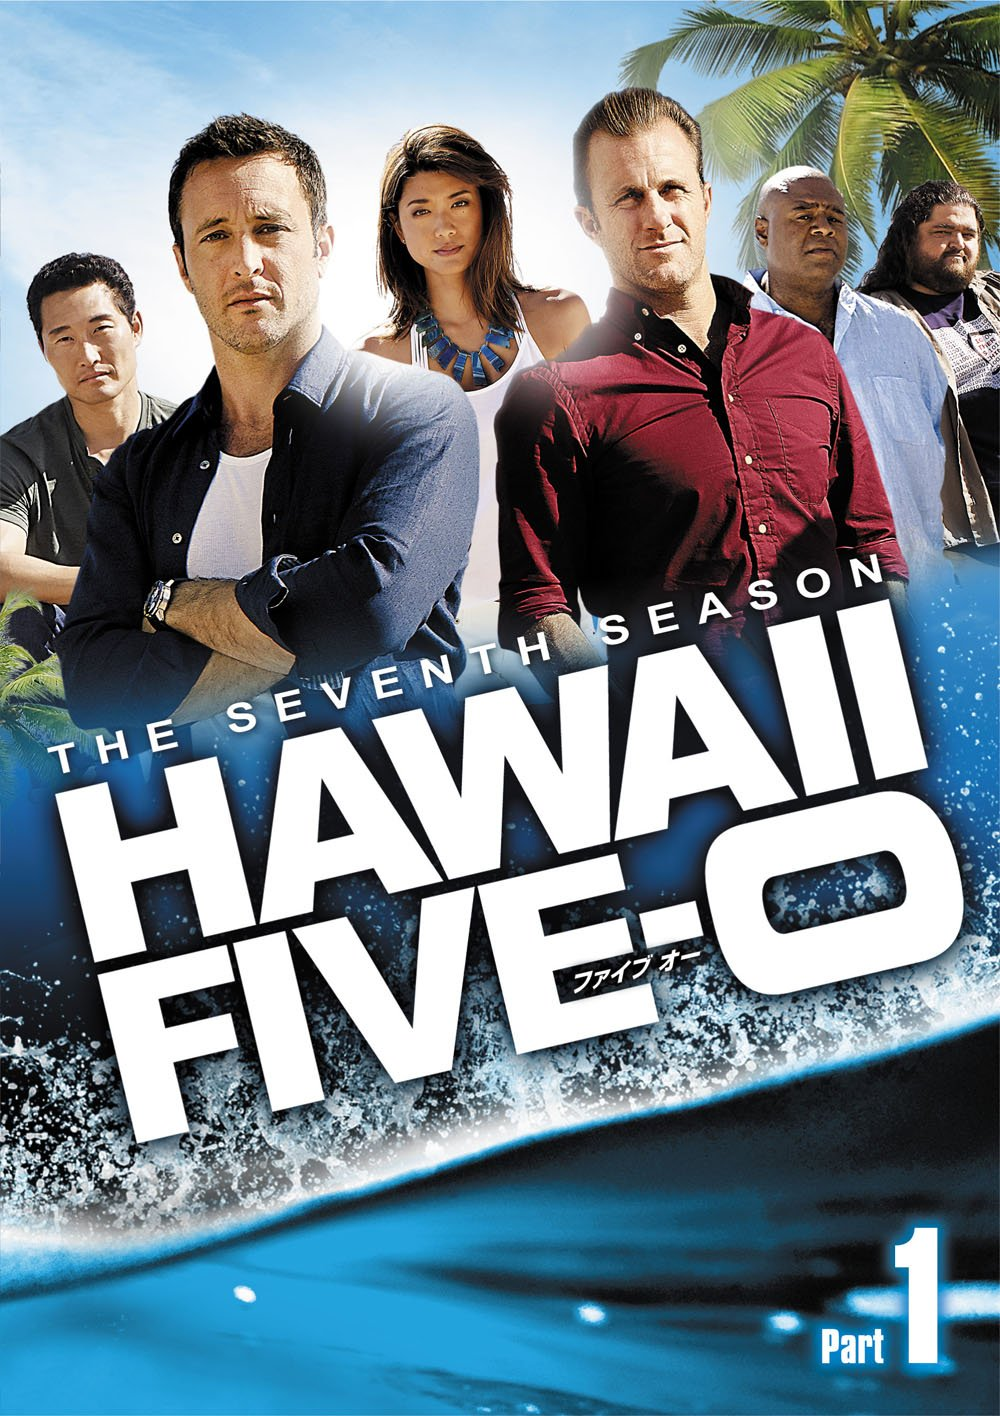 Hawaii Five-0 シーズン7 DVD-BOX Part1(6枚組) B076HB2X3Q